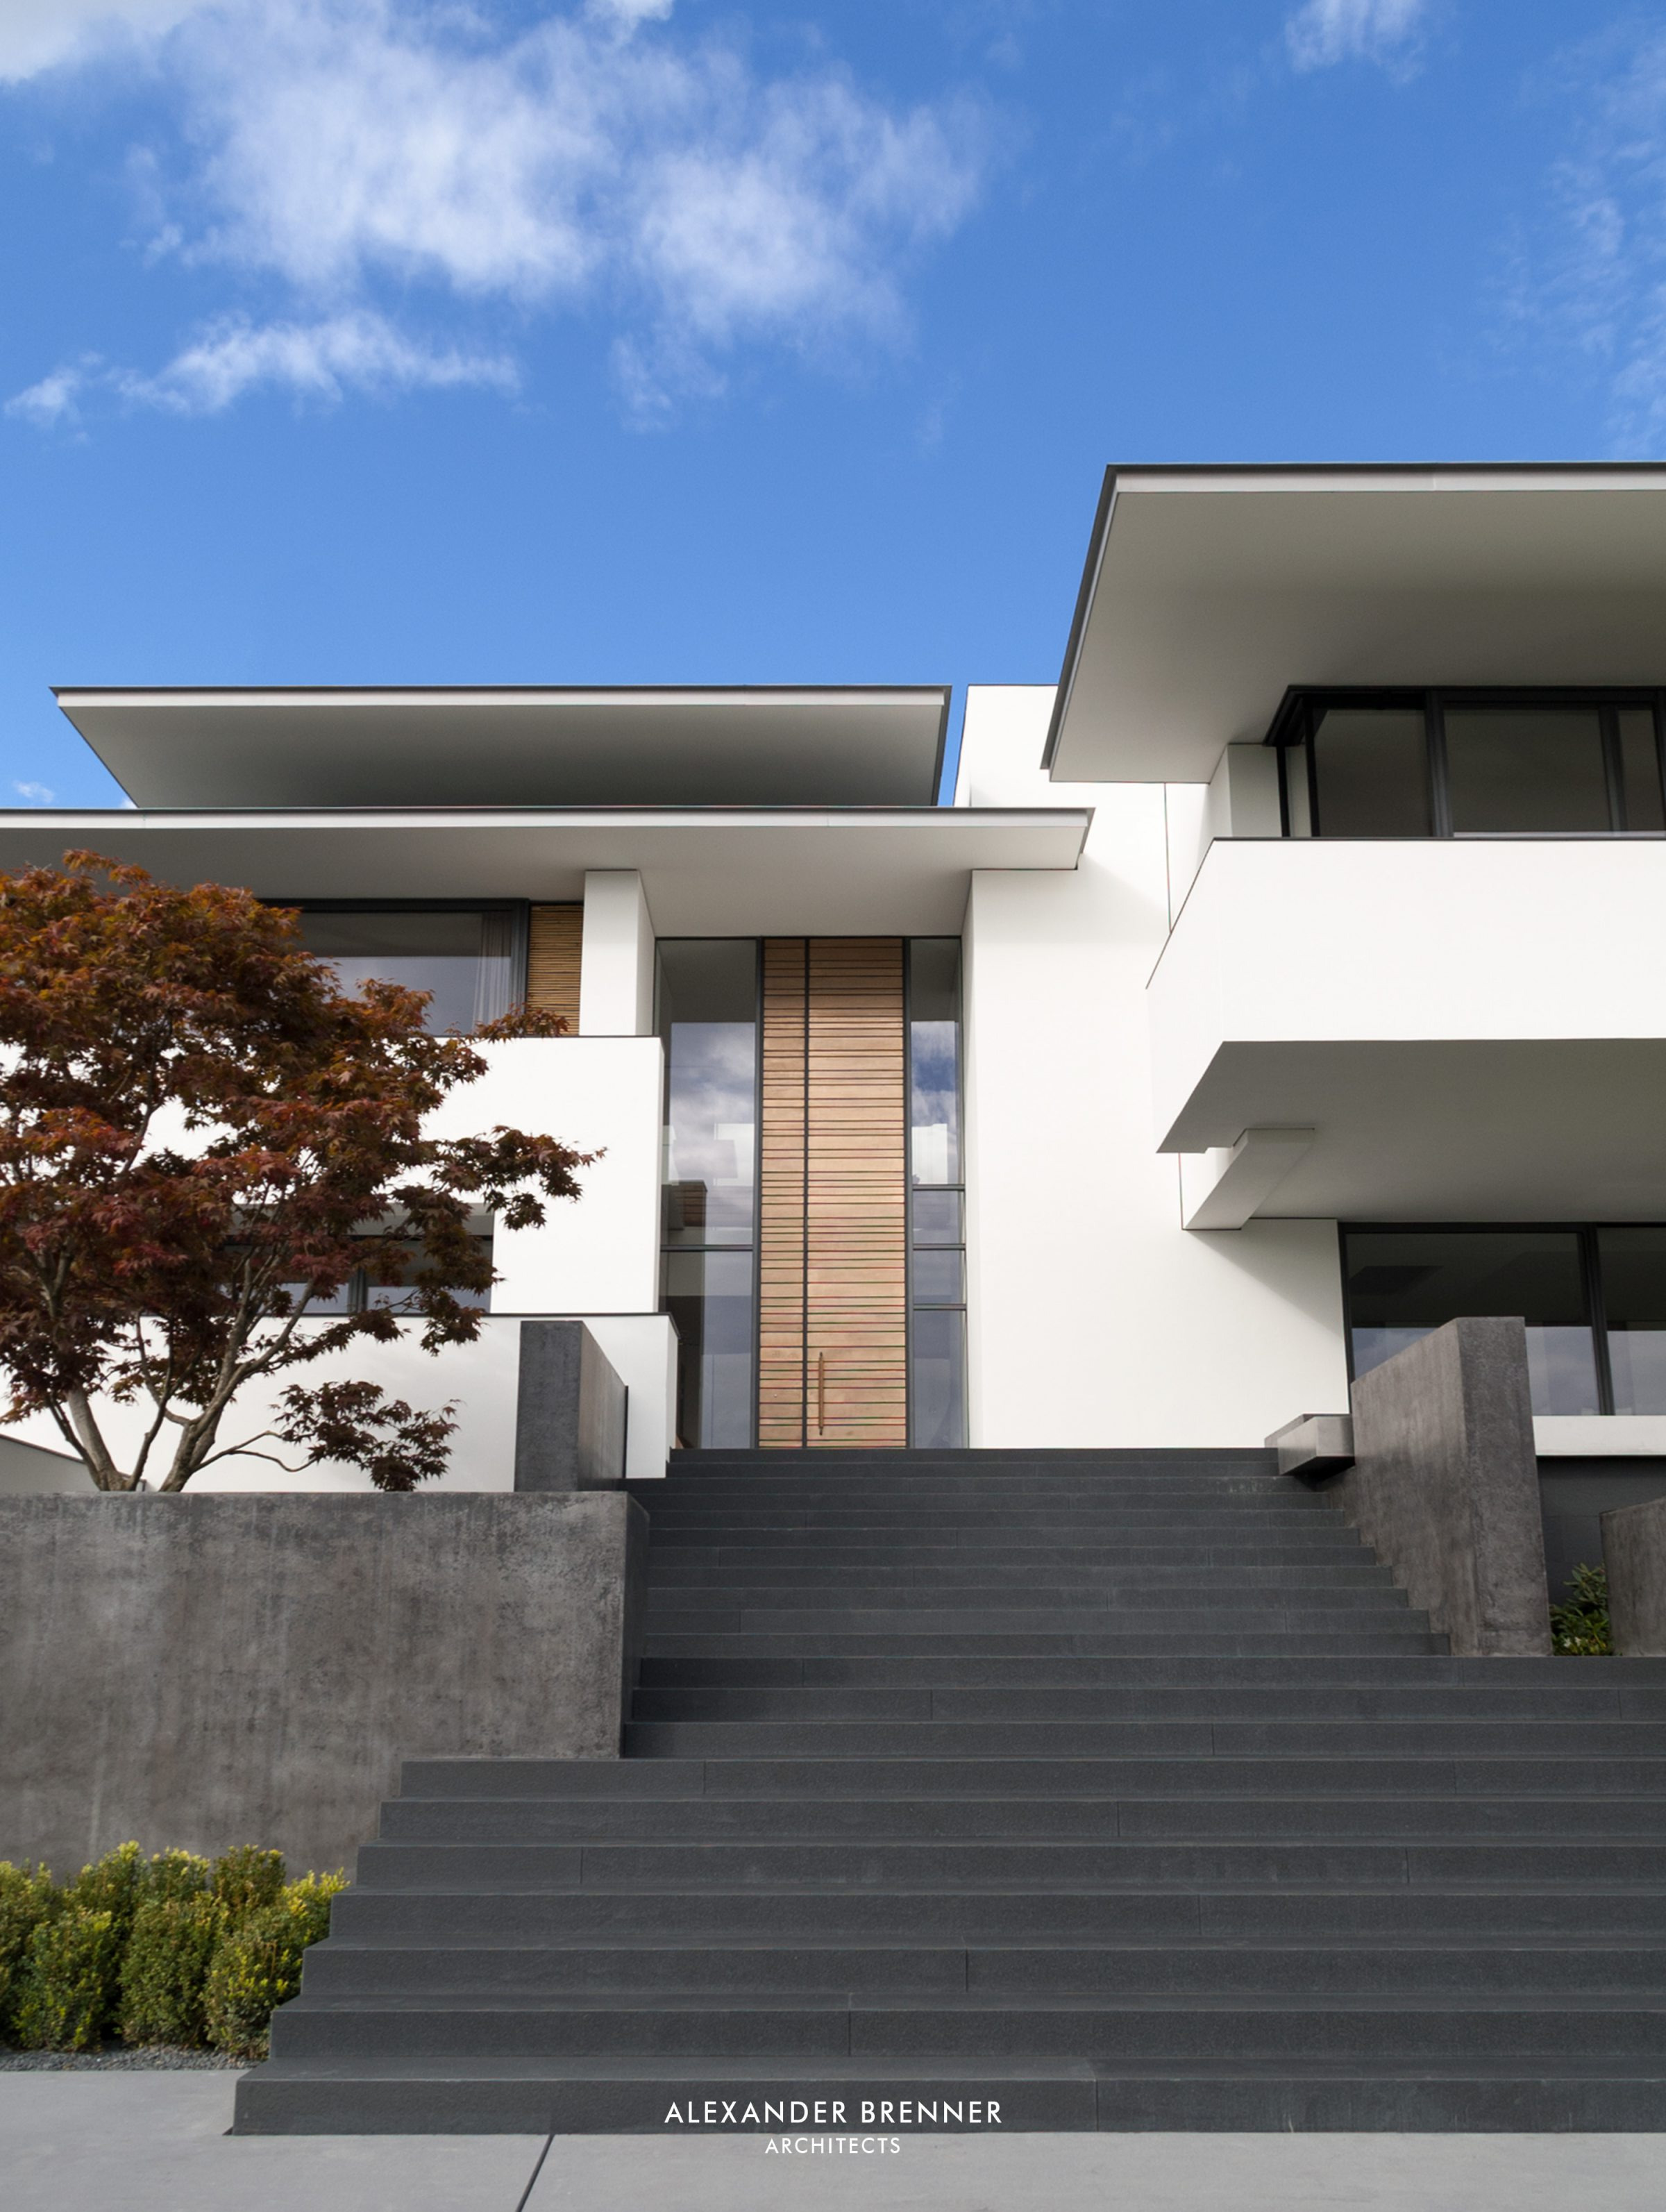 Pictures Of Villa Houses New An Der Achalm Alexander Brenner Architects Villas and Houses